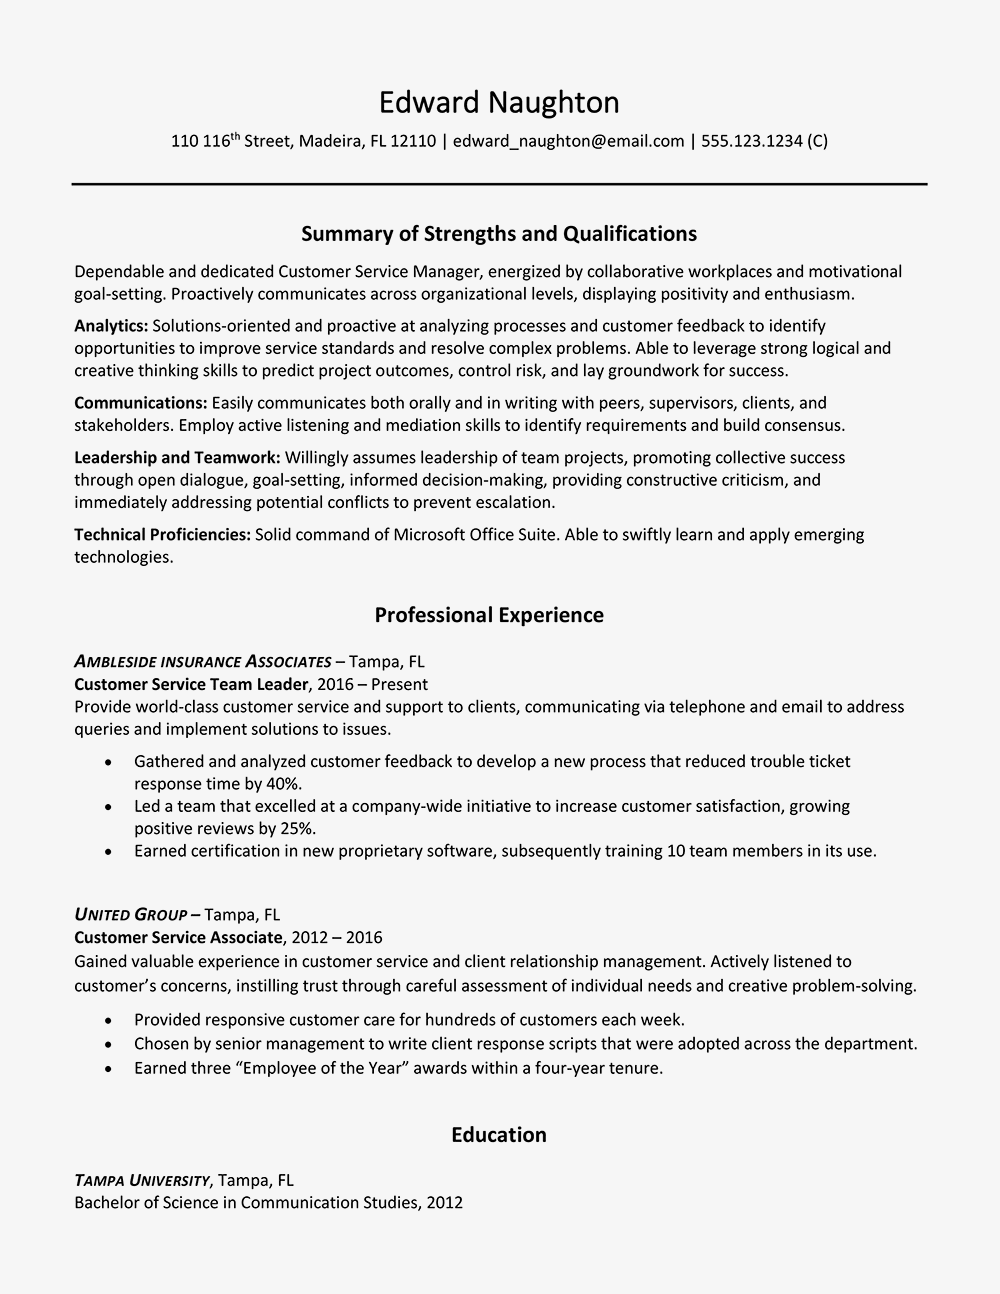 list of strengths for resumes cover letters and interviews - Strengths To Be Mentioned In Resume